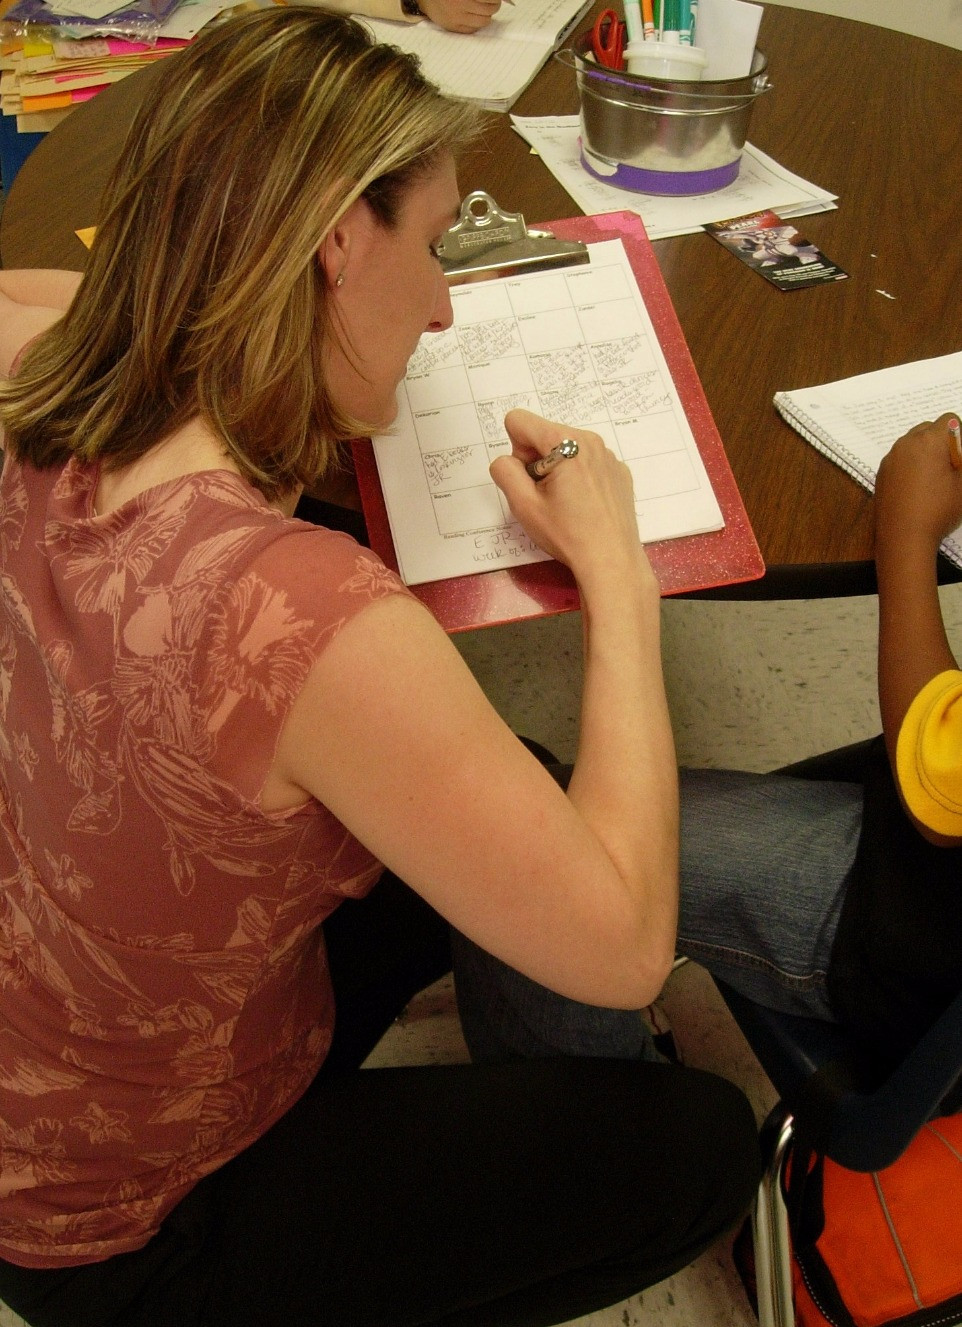 Teacher conferring and anecdotal notes